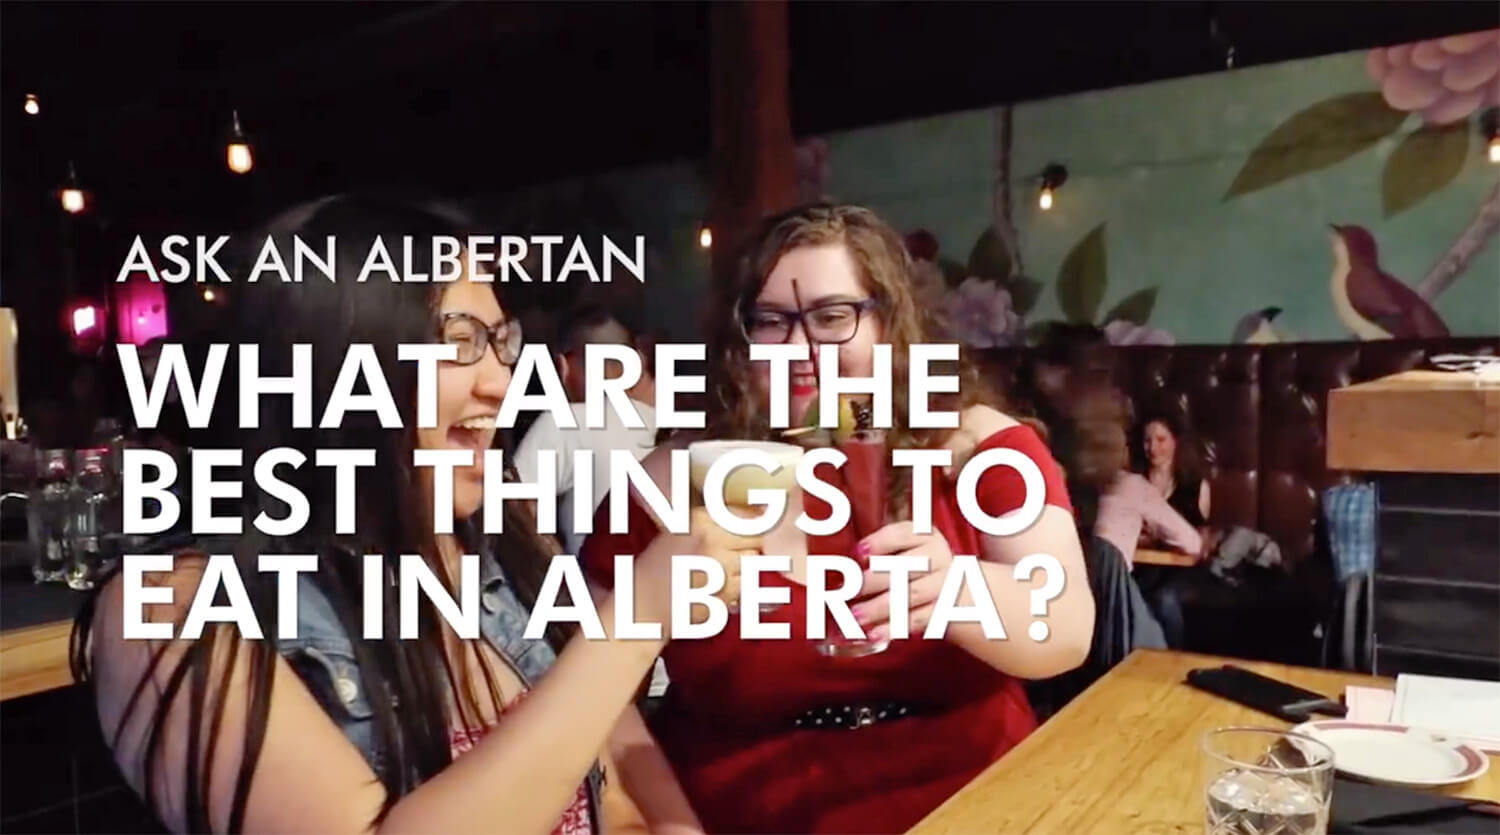 Ask an Albertan - Explore Alberta - What to Eat in Alberta